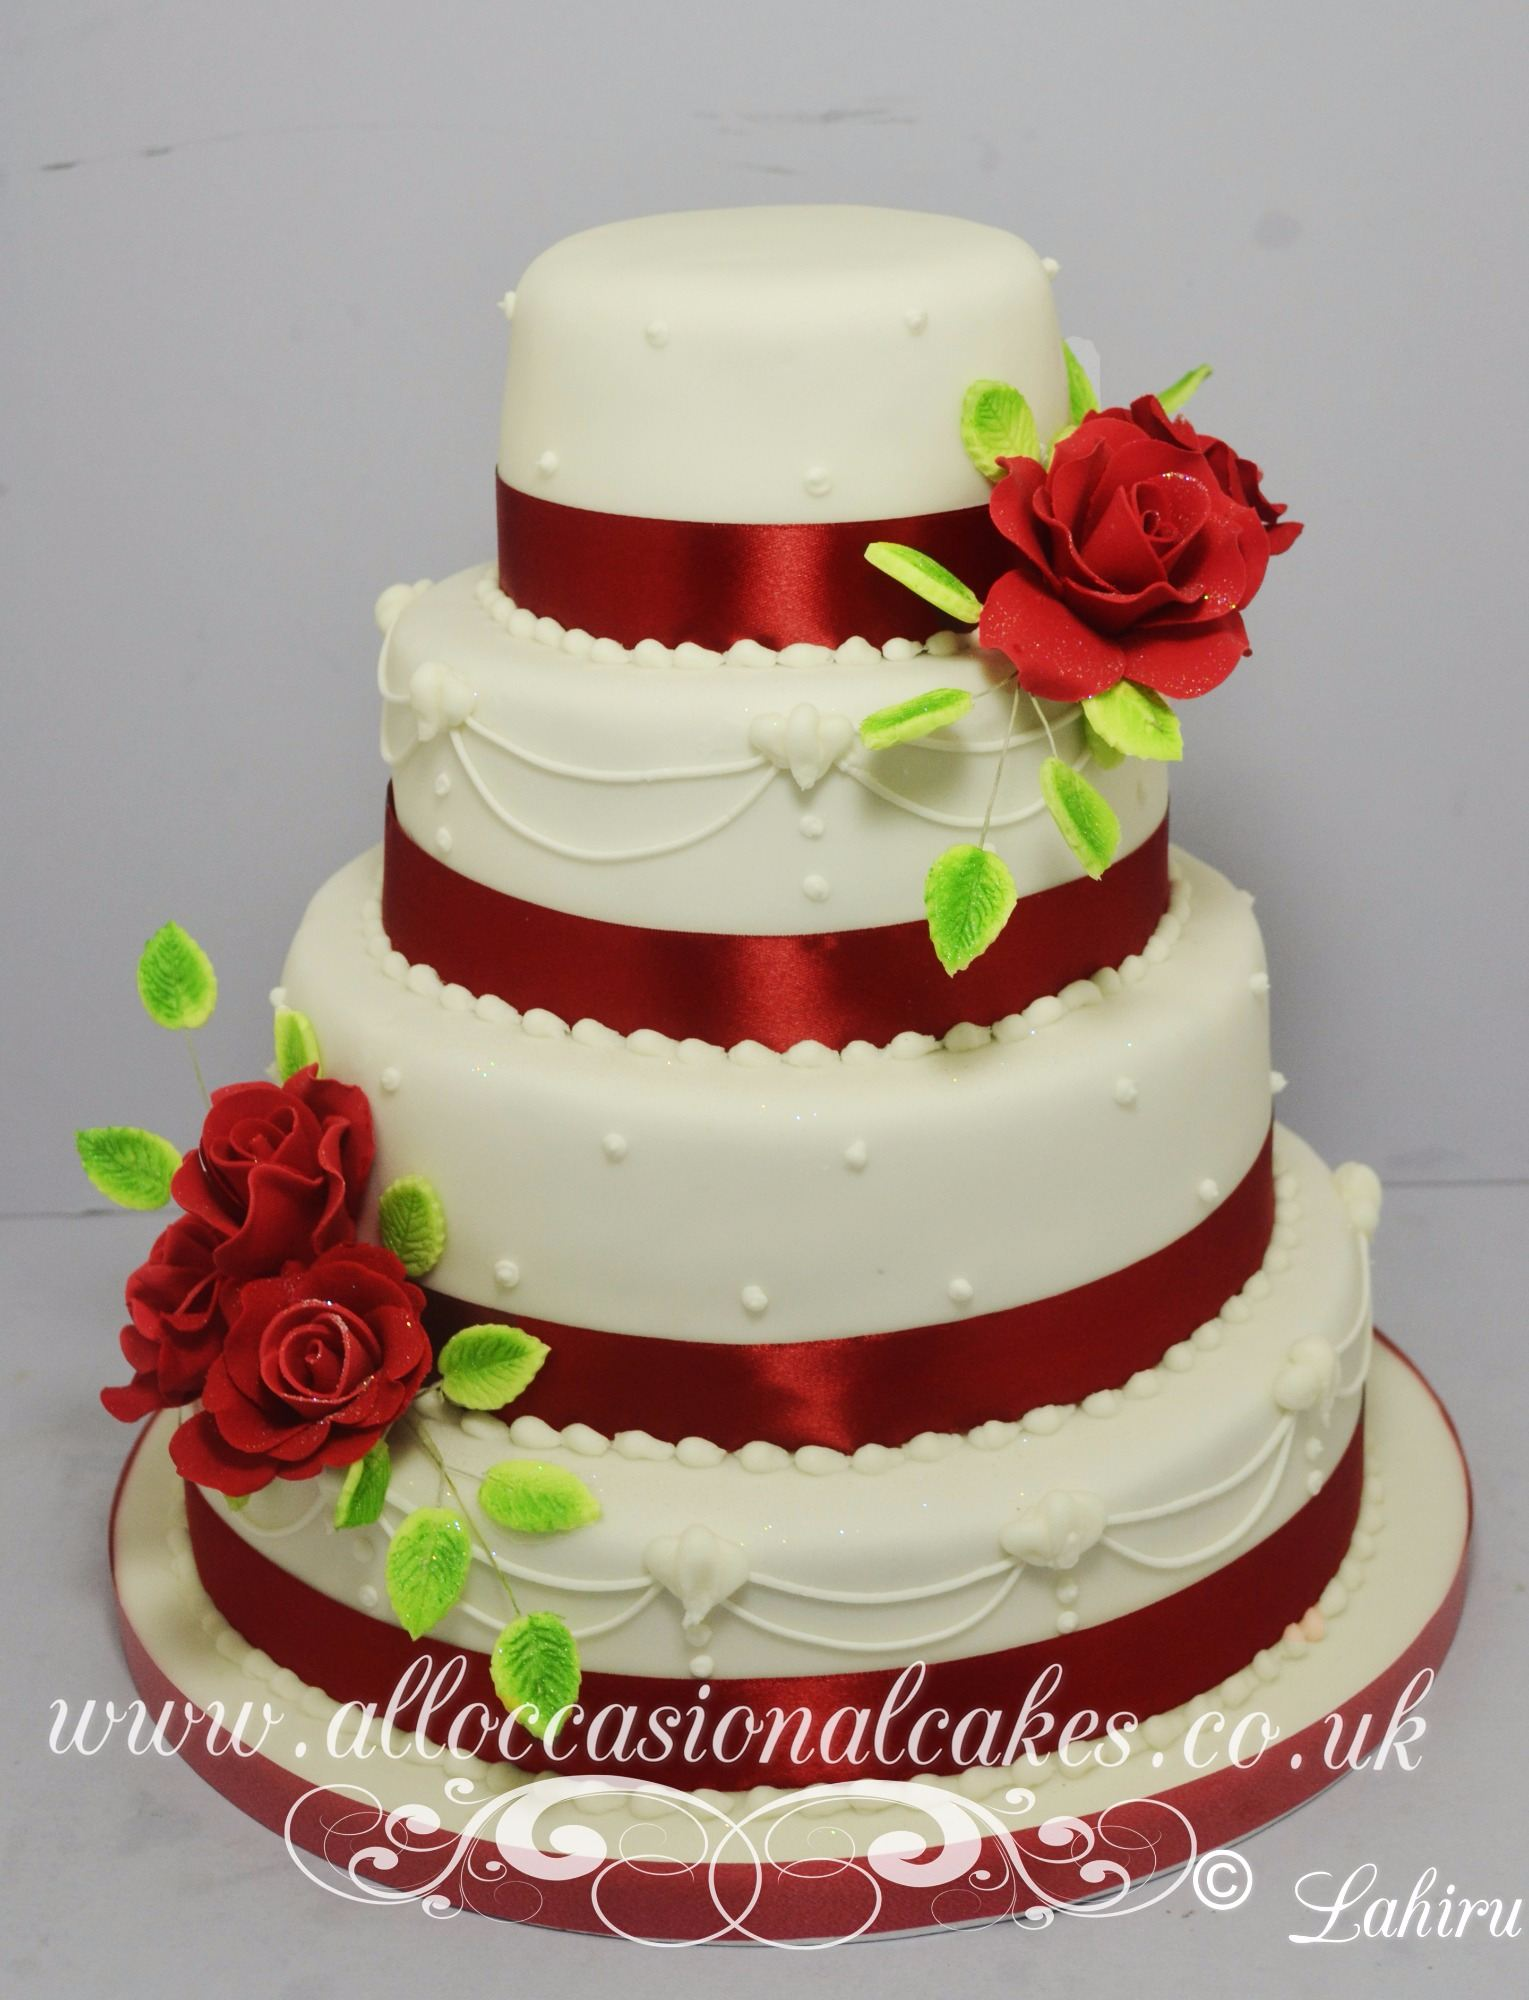 Ruby rose with piping sophisticated wedding cake Bristol